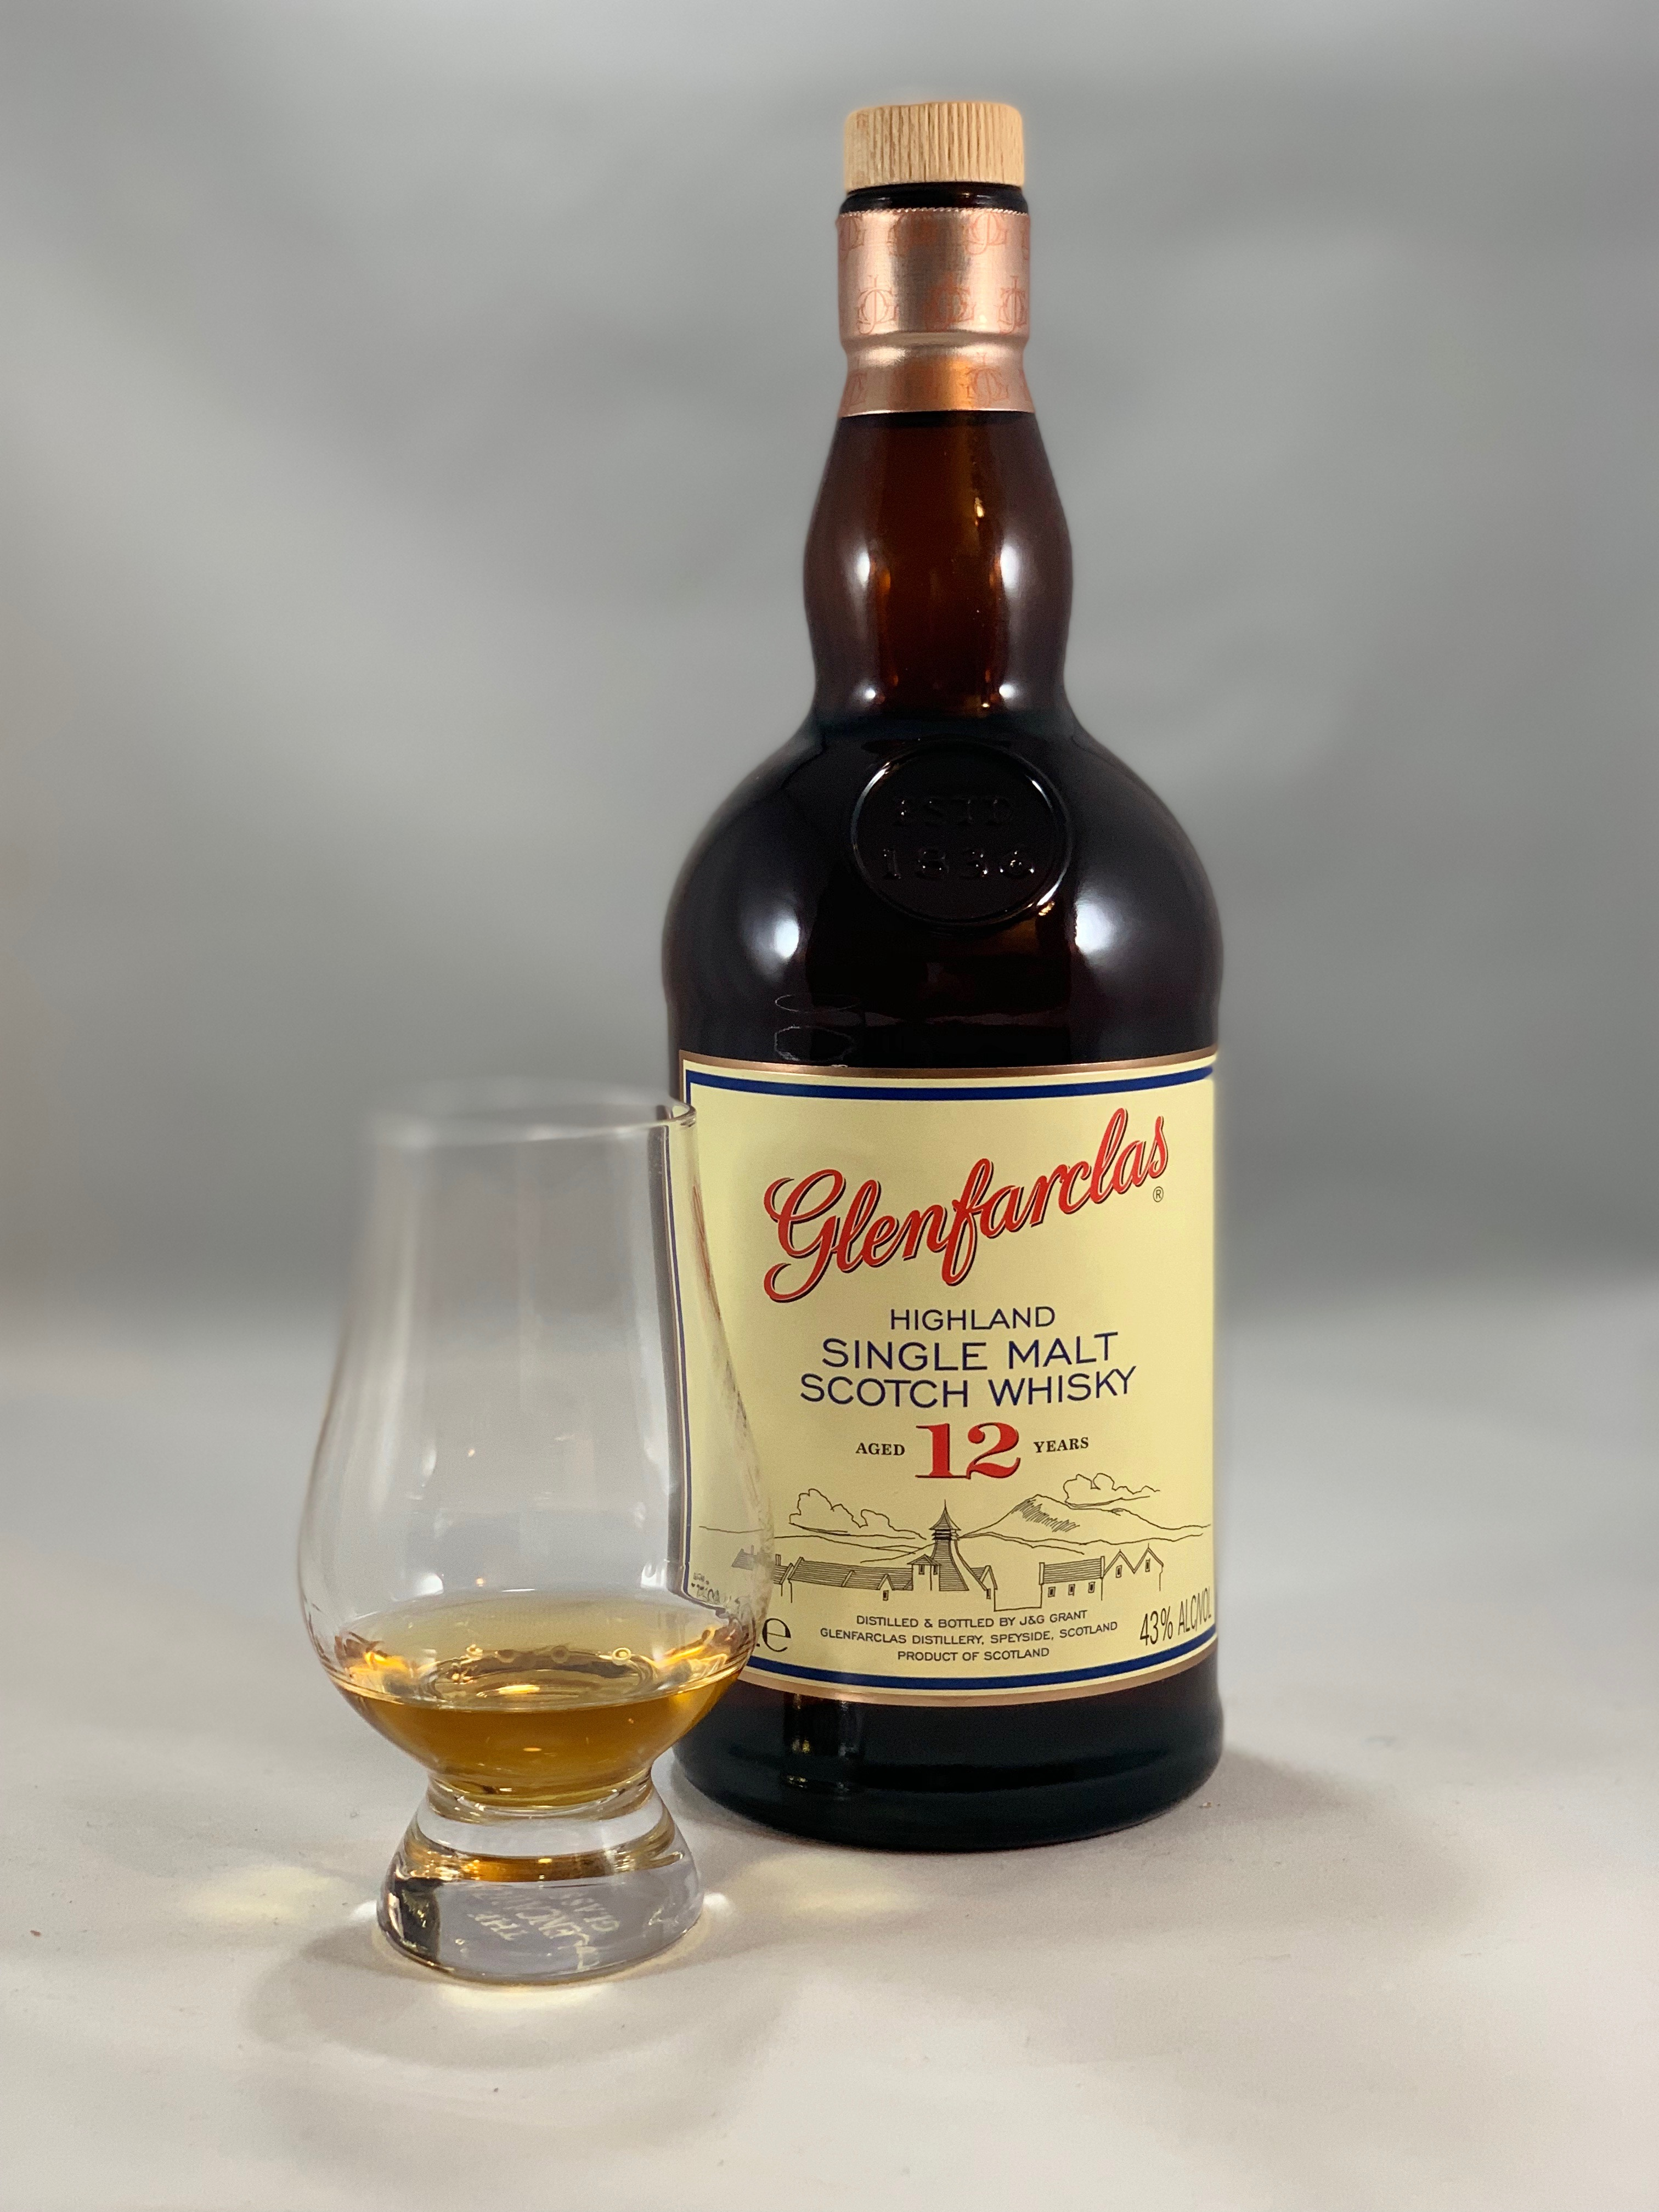 Glenfarclas 12yr in bottle with pour in glass